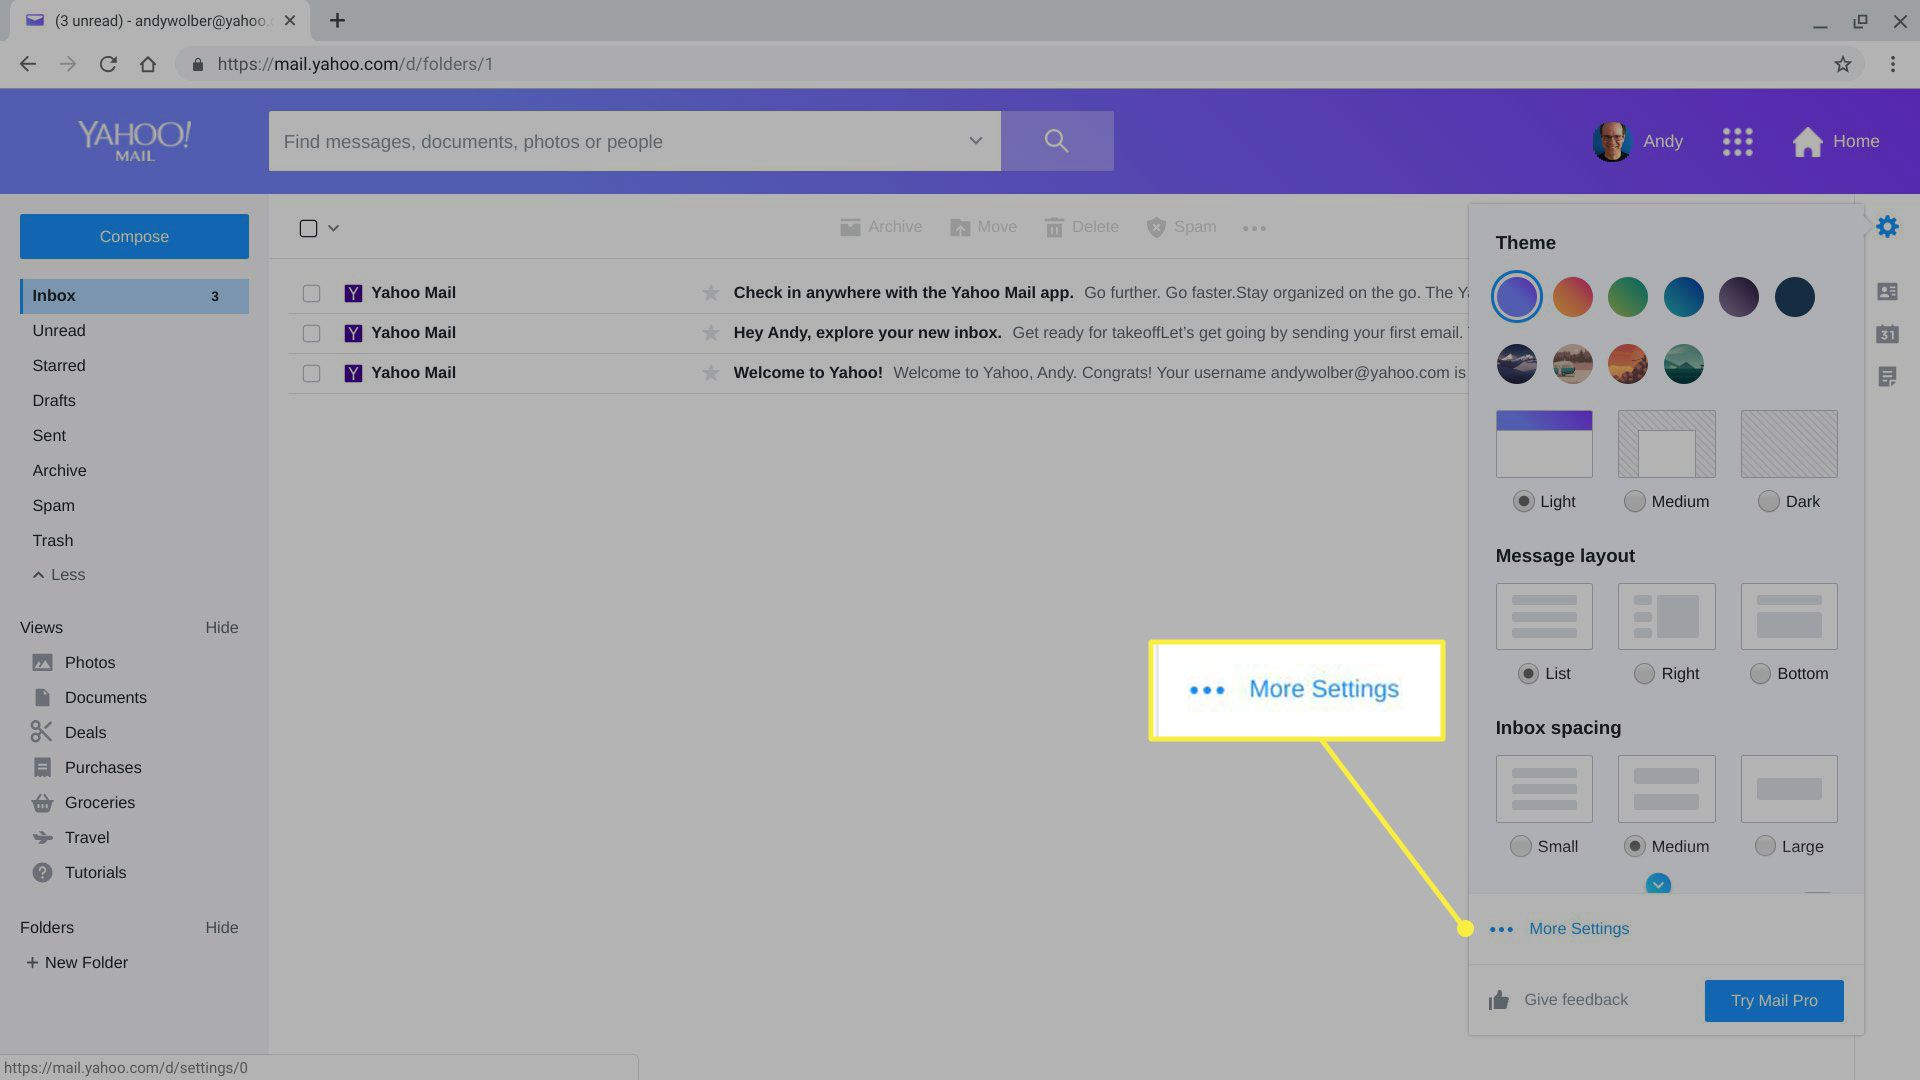 More Settings in Yahoo Mail